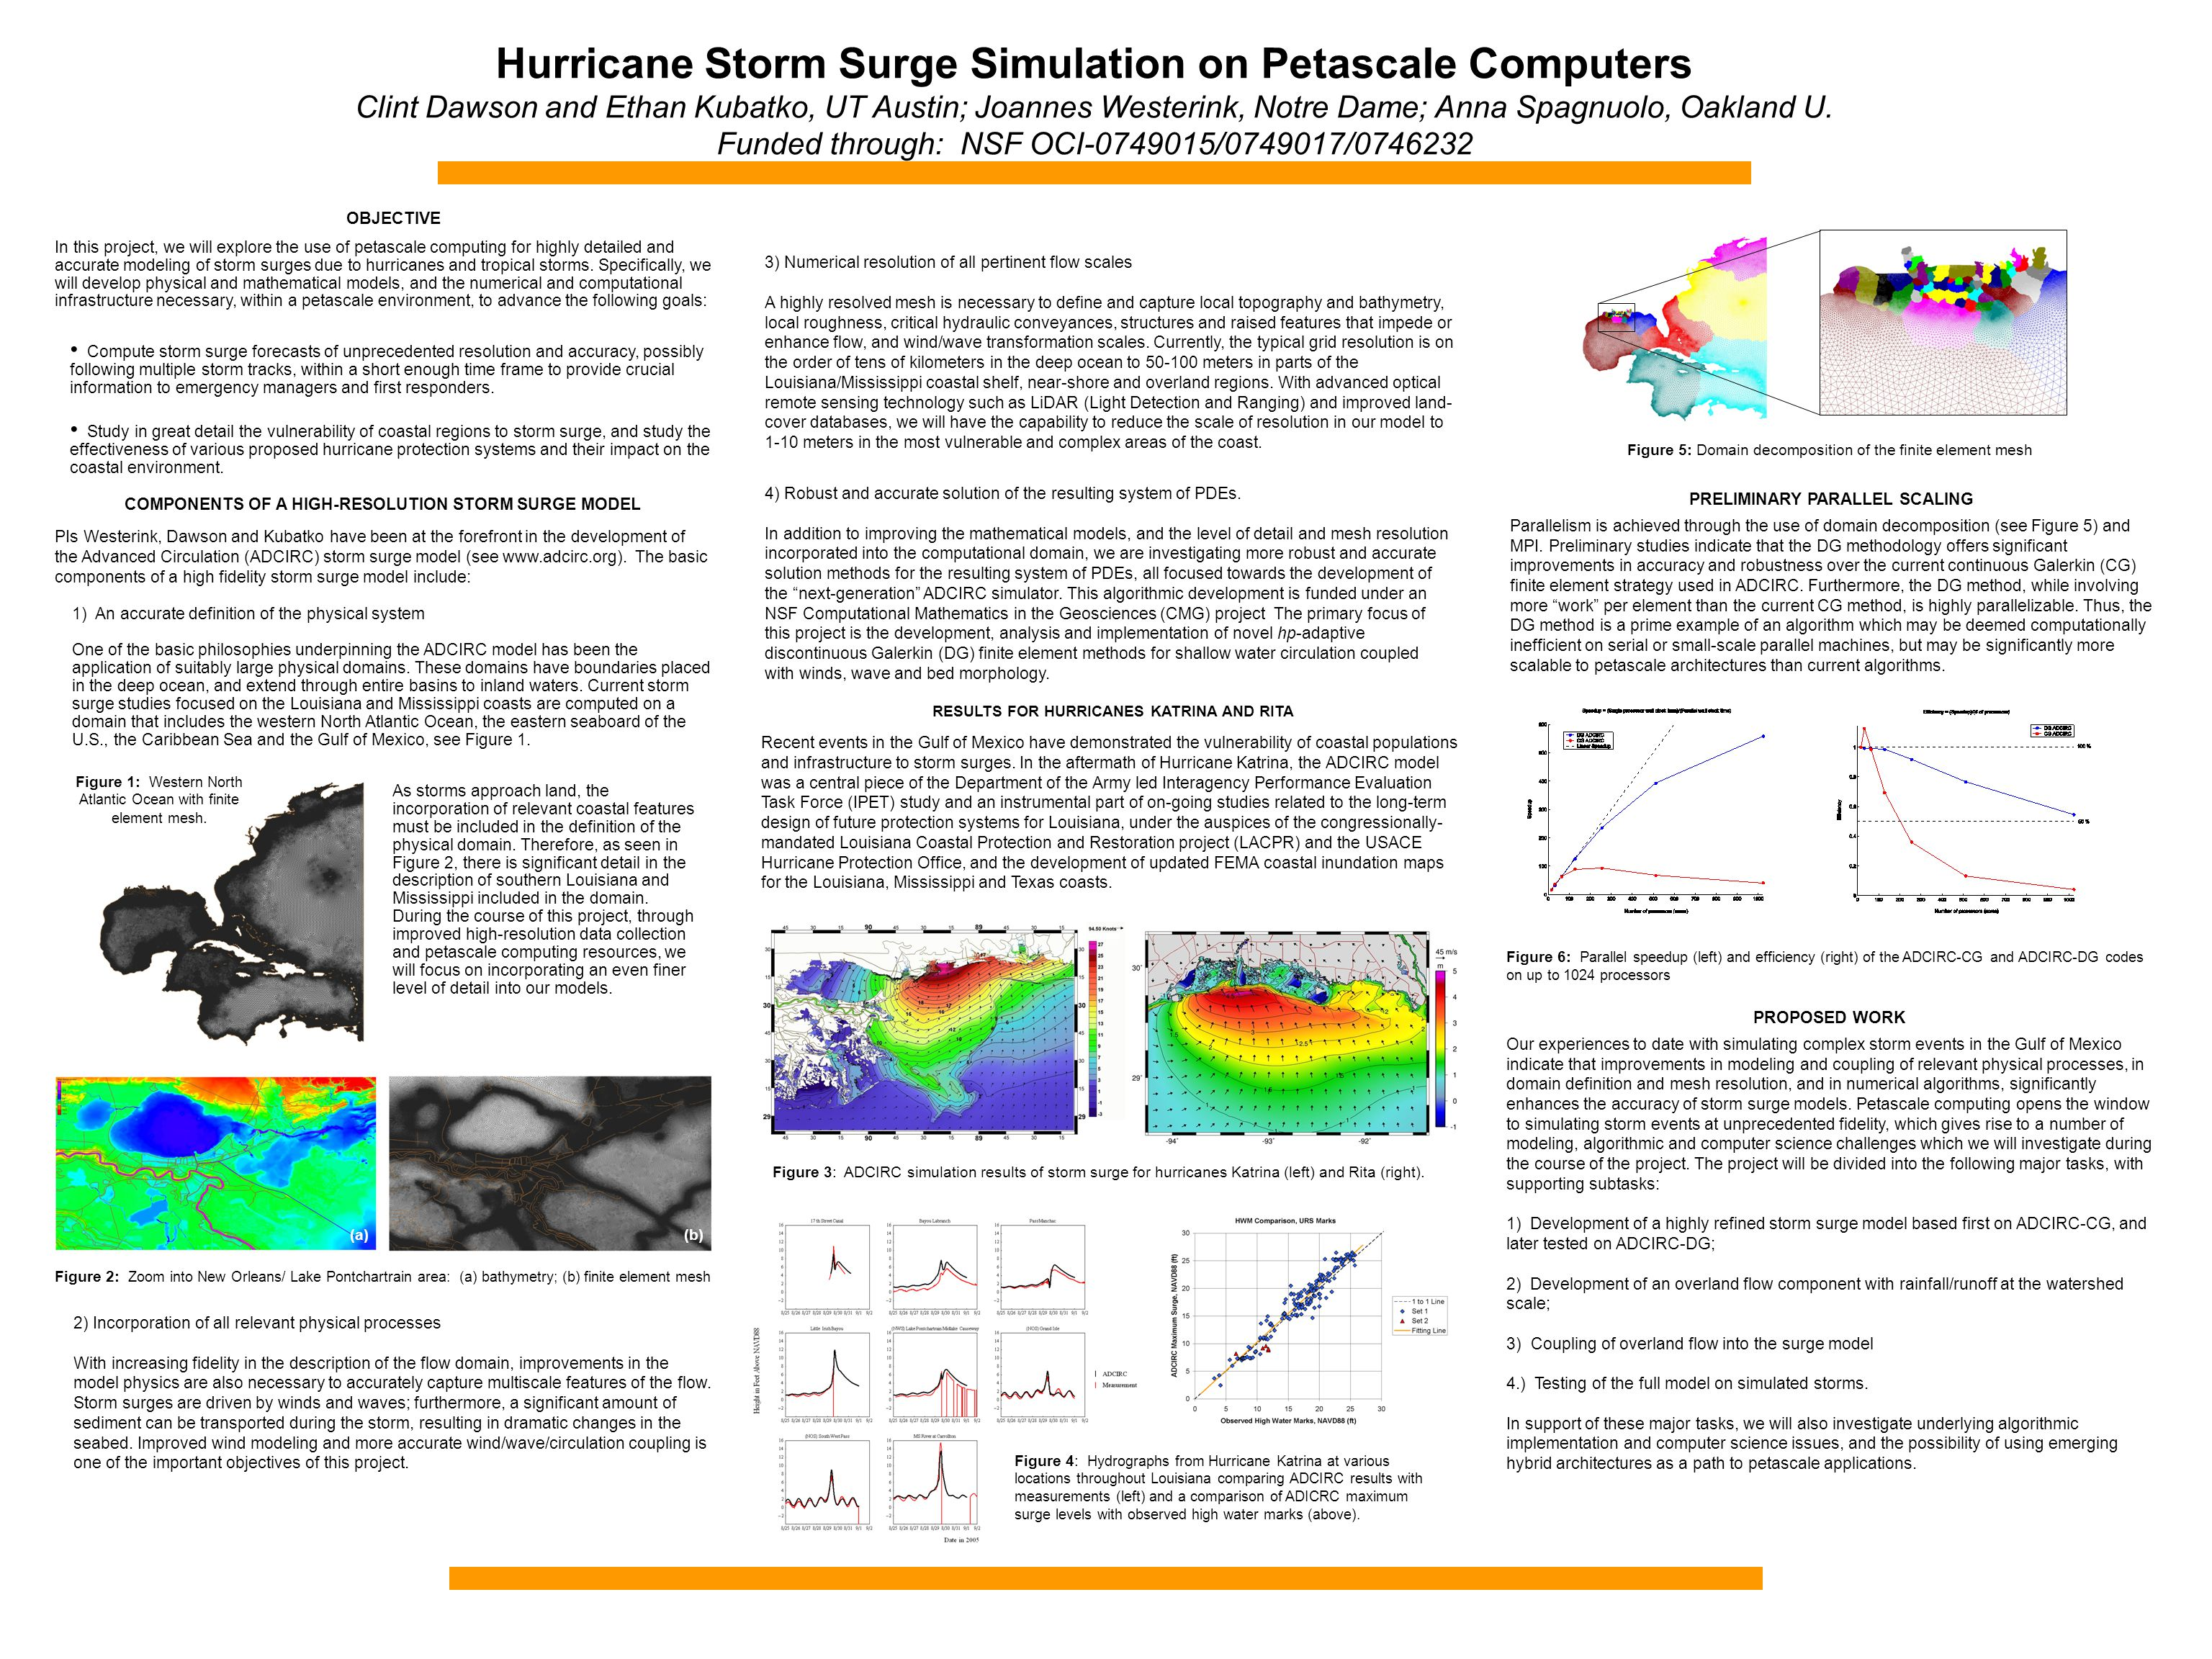 Hurricane Storm Surge Simulation on Petascale Computers Clint Dawson and Ethan Kubatko, UT Austin; Joannes Westerink, Notre Dame; Anna Spagnuolo, Oakland U.